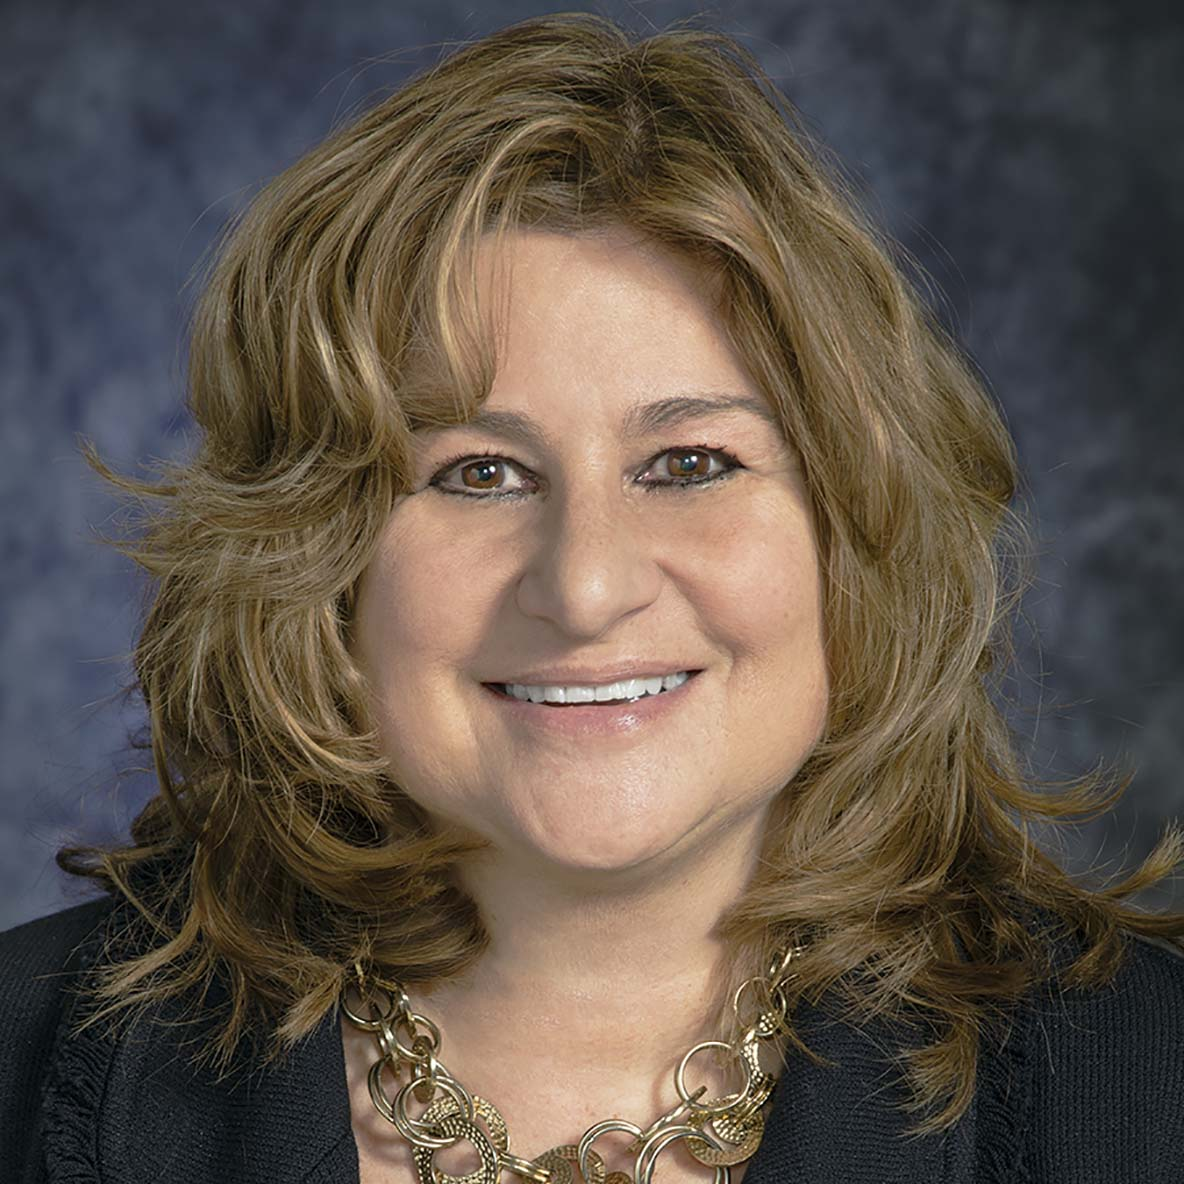 Cheryl Capps, Senior Vice President, Global Supply Chain